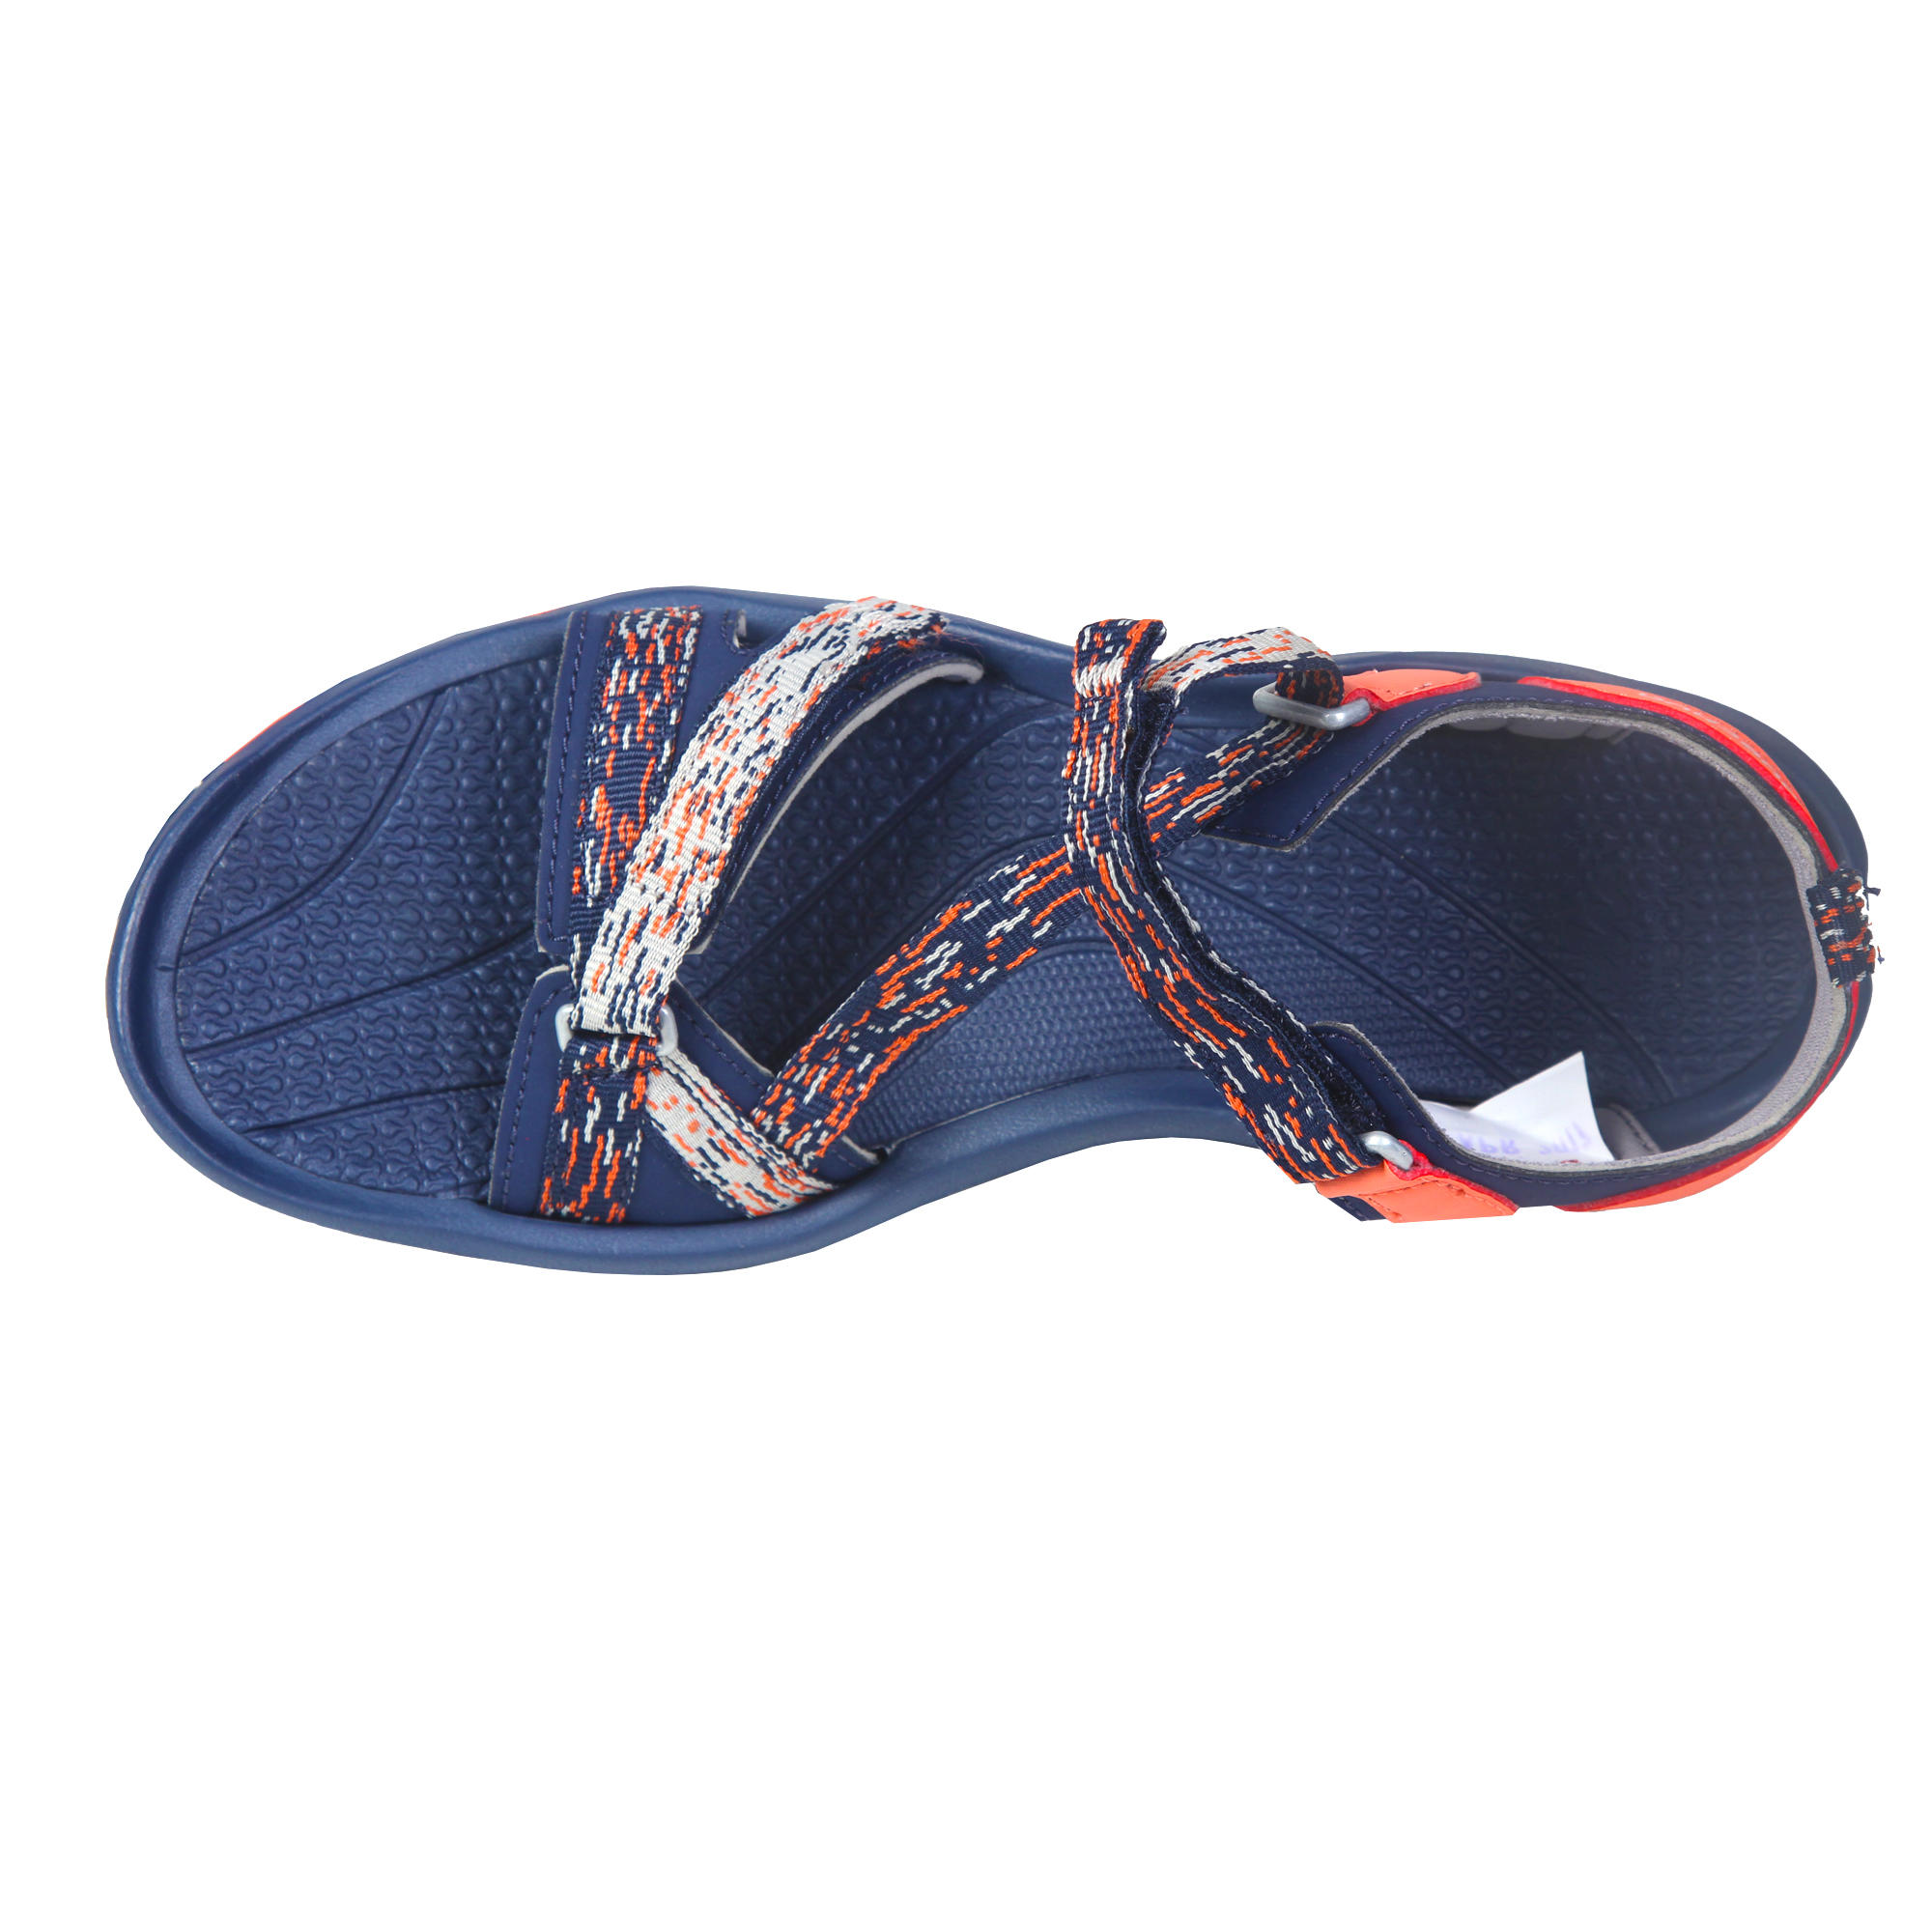 Arpenaz 100 Women's Backpacking Sandal Blue Print